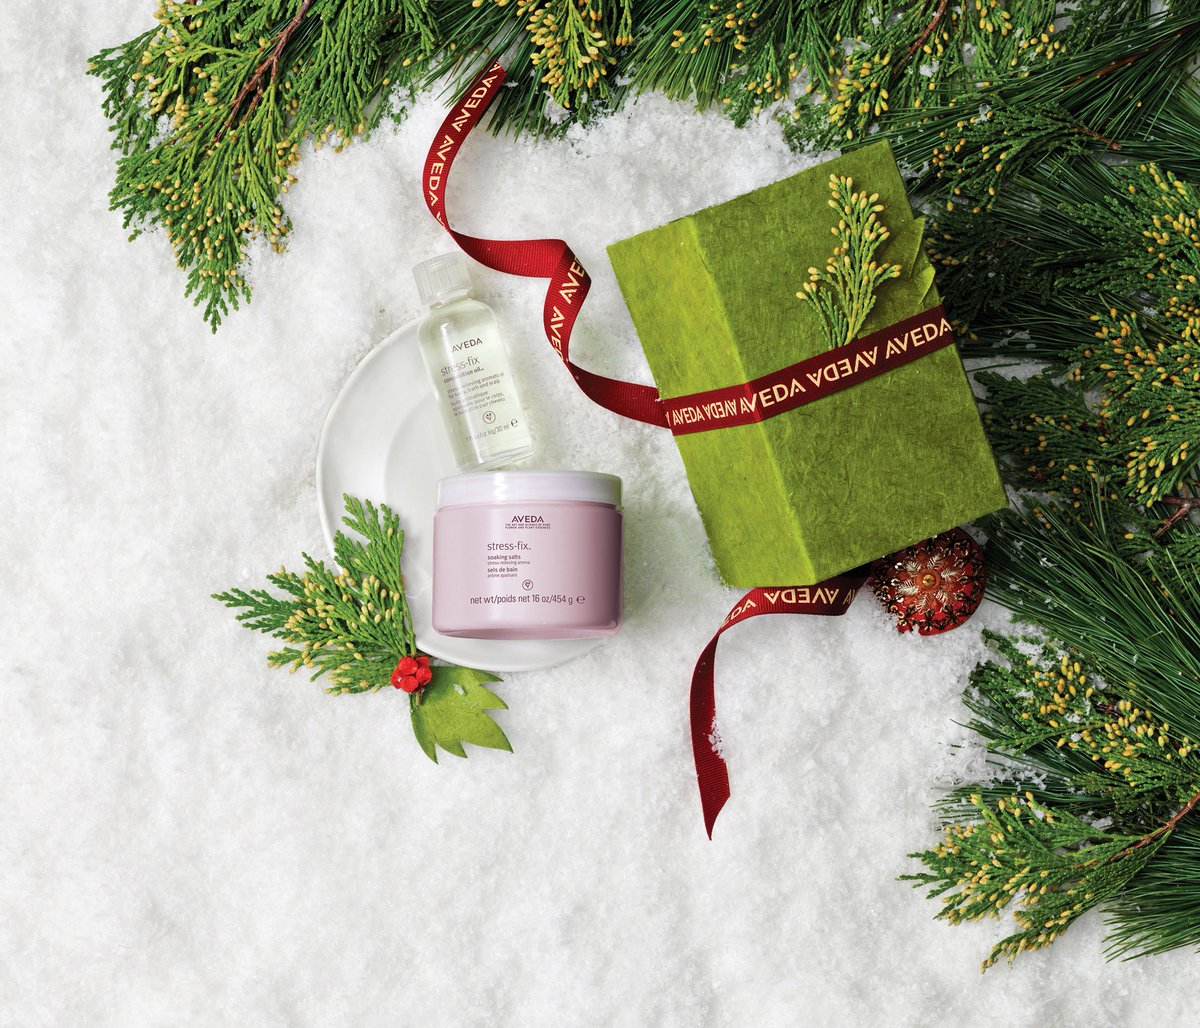 aveda on twitter give your best friend a quiet retreat from stress giveaveda httpstco6lck89wes7 httpstcoxaiwxayzug - What To Give Your Best Friend For Christmas